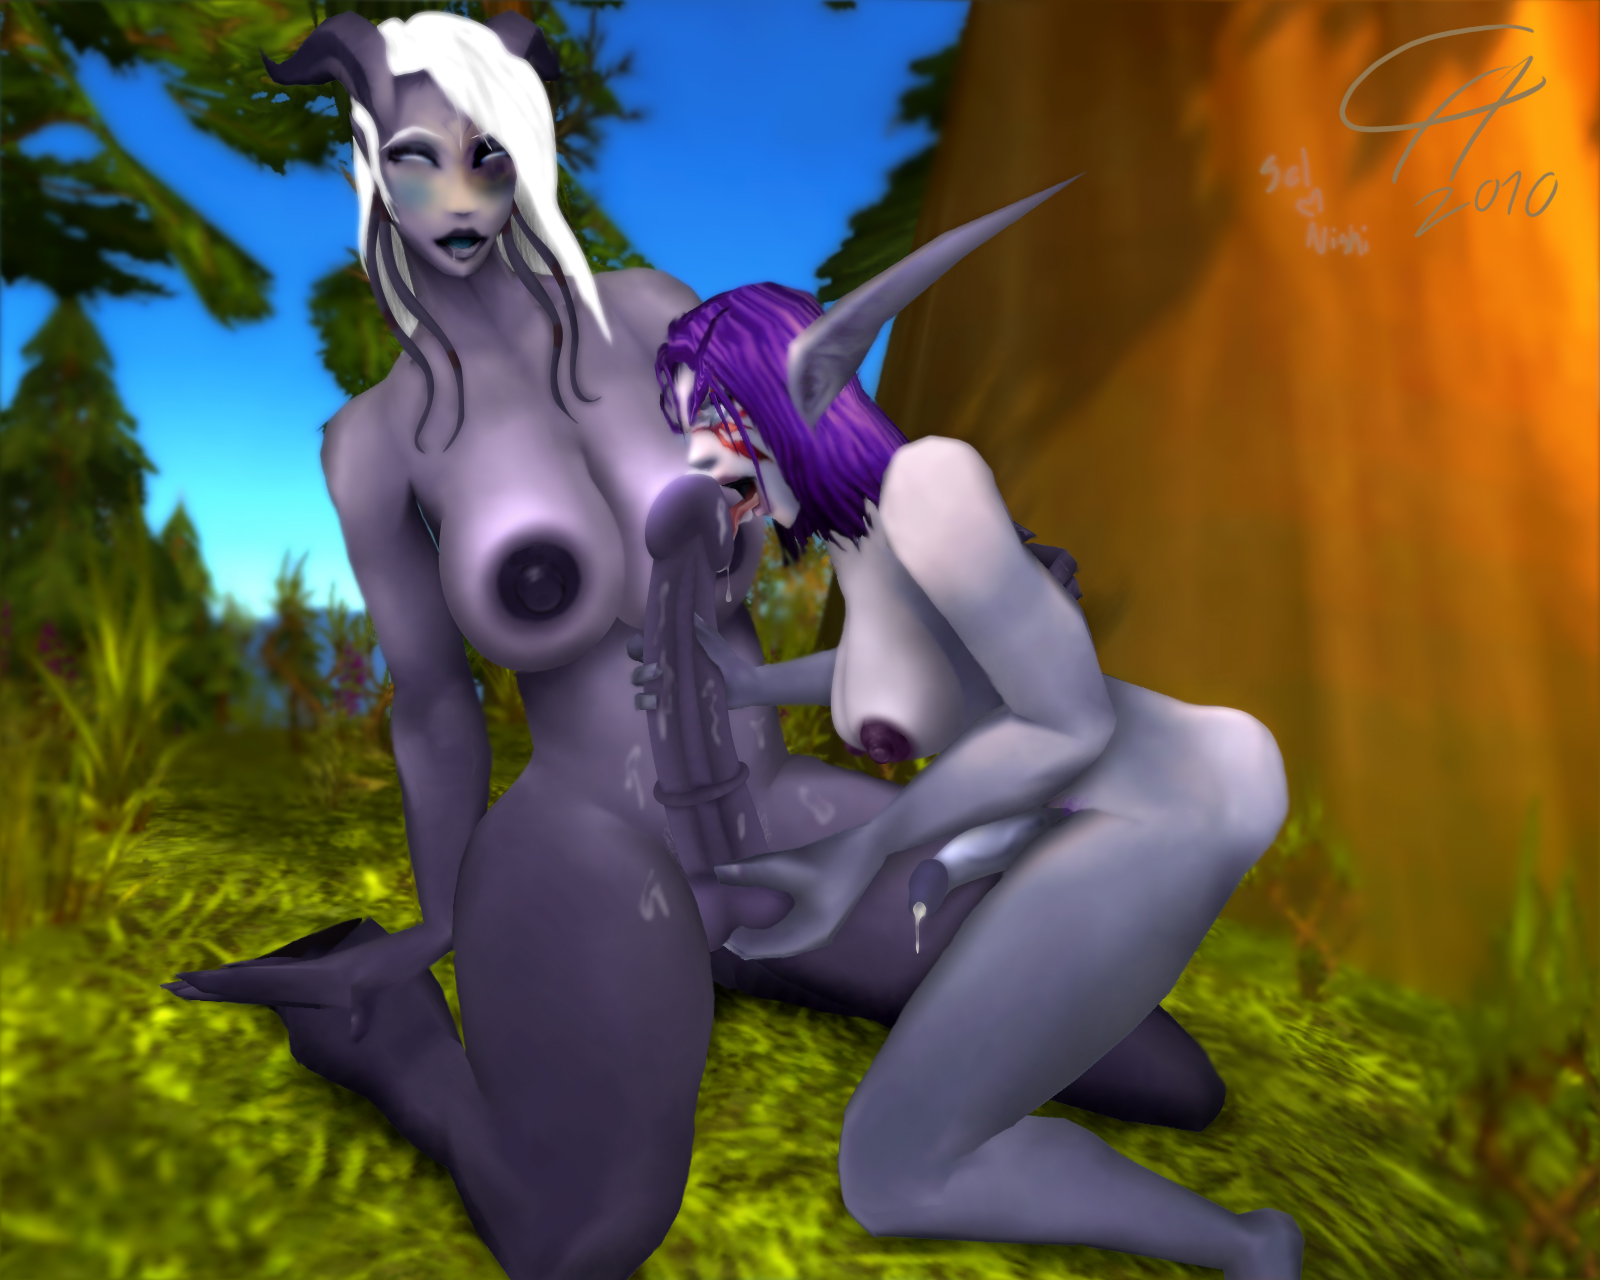 World of warcraft nude fanart xxx comics